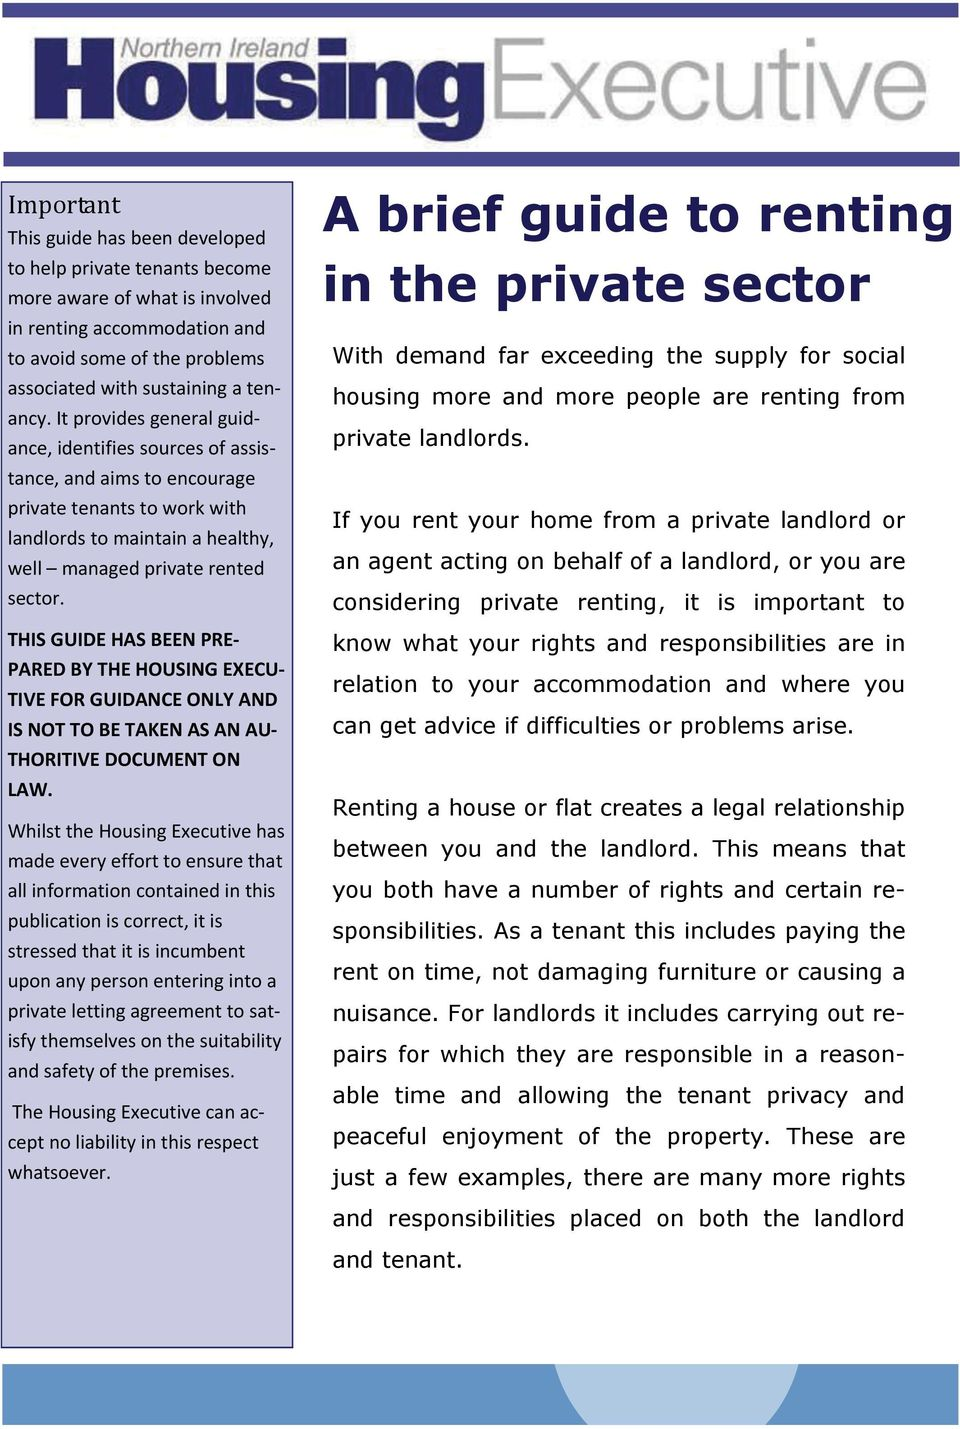 THIS GUIDE HAS BEEN PRE PARED BY THE HOUSING EXECU TIVE FOR GUIDANCE ONLY AND IS NOT TO BE TAKEN AS AN AU THORITIVE DOCUMENT ON LAW.